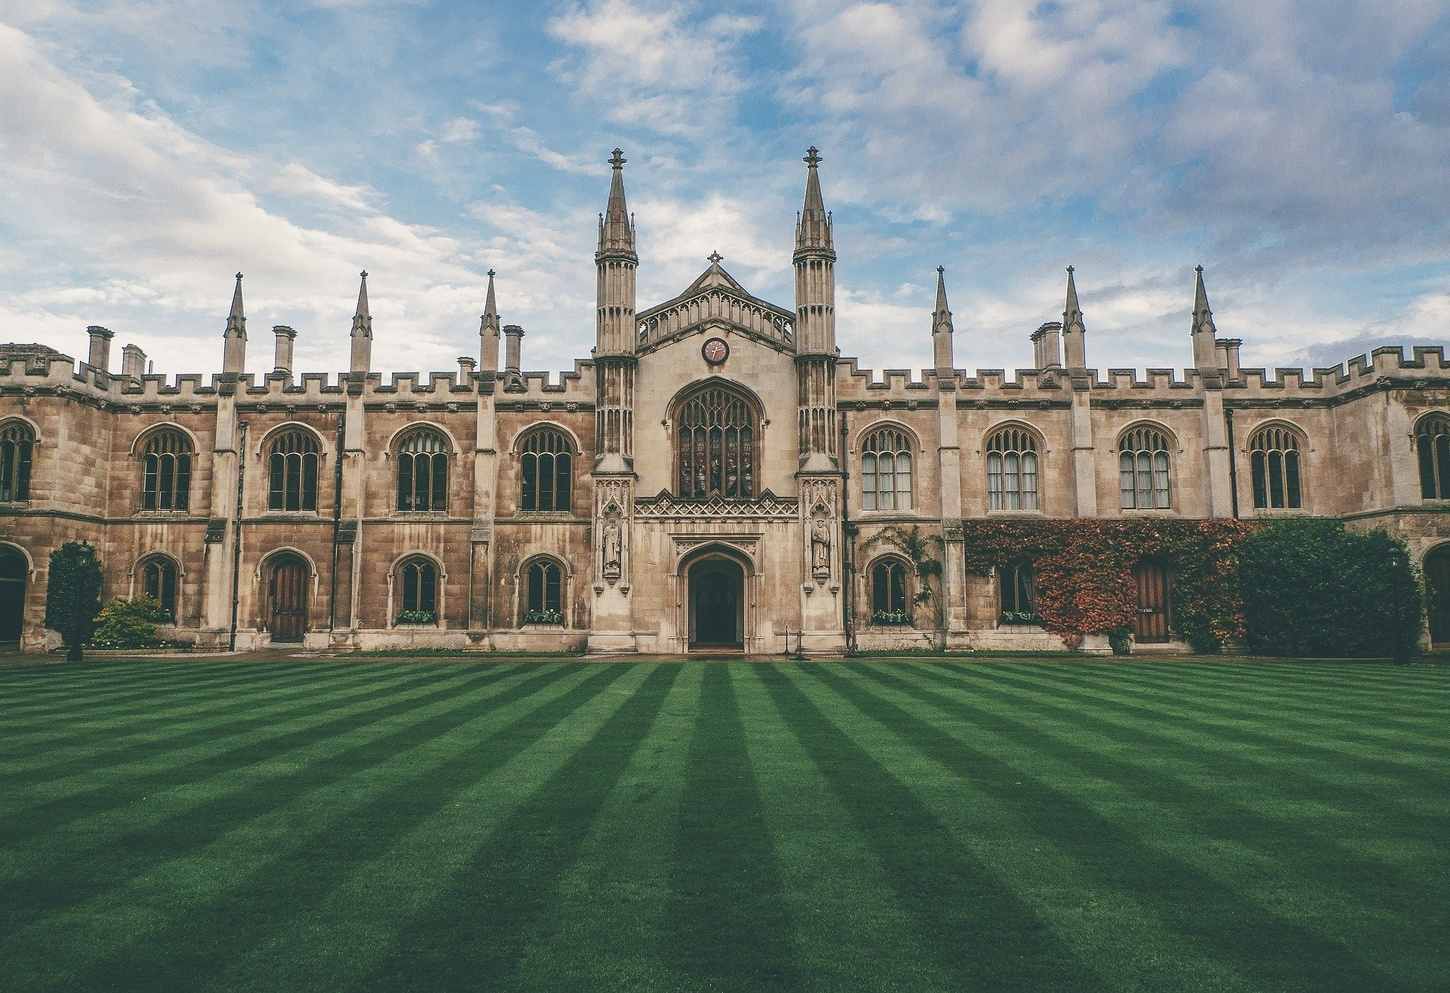 cambridge universty lawn and building